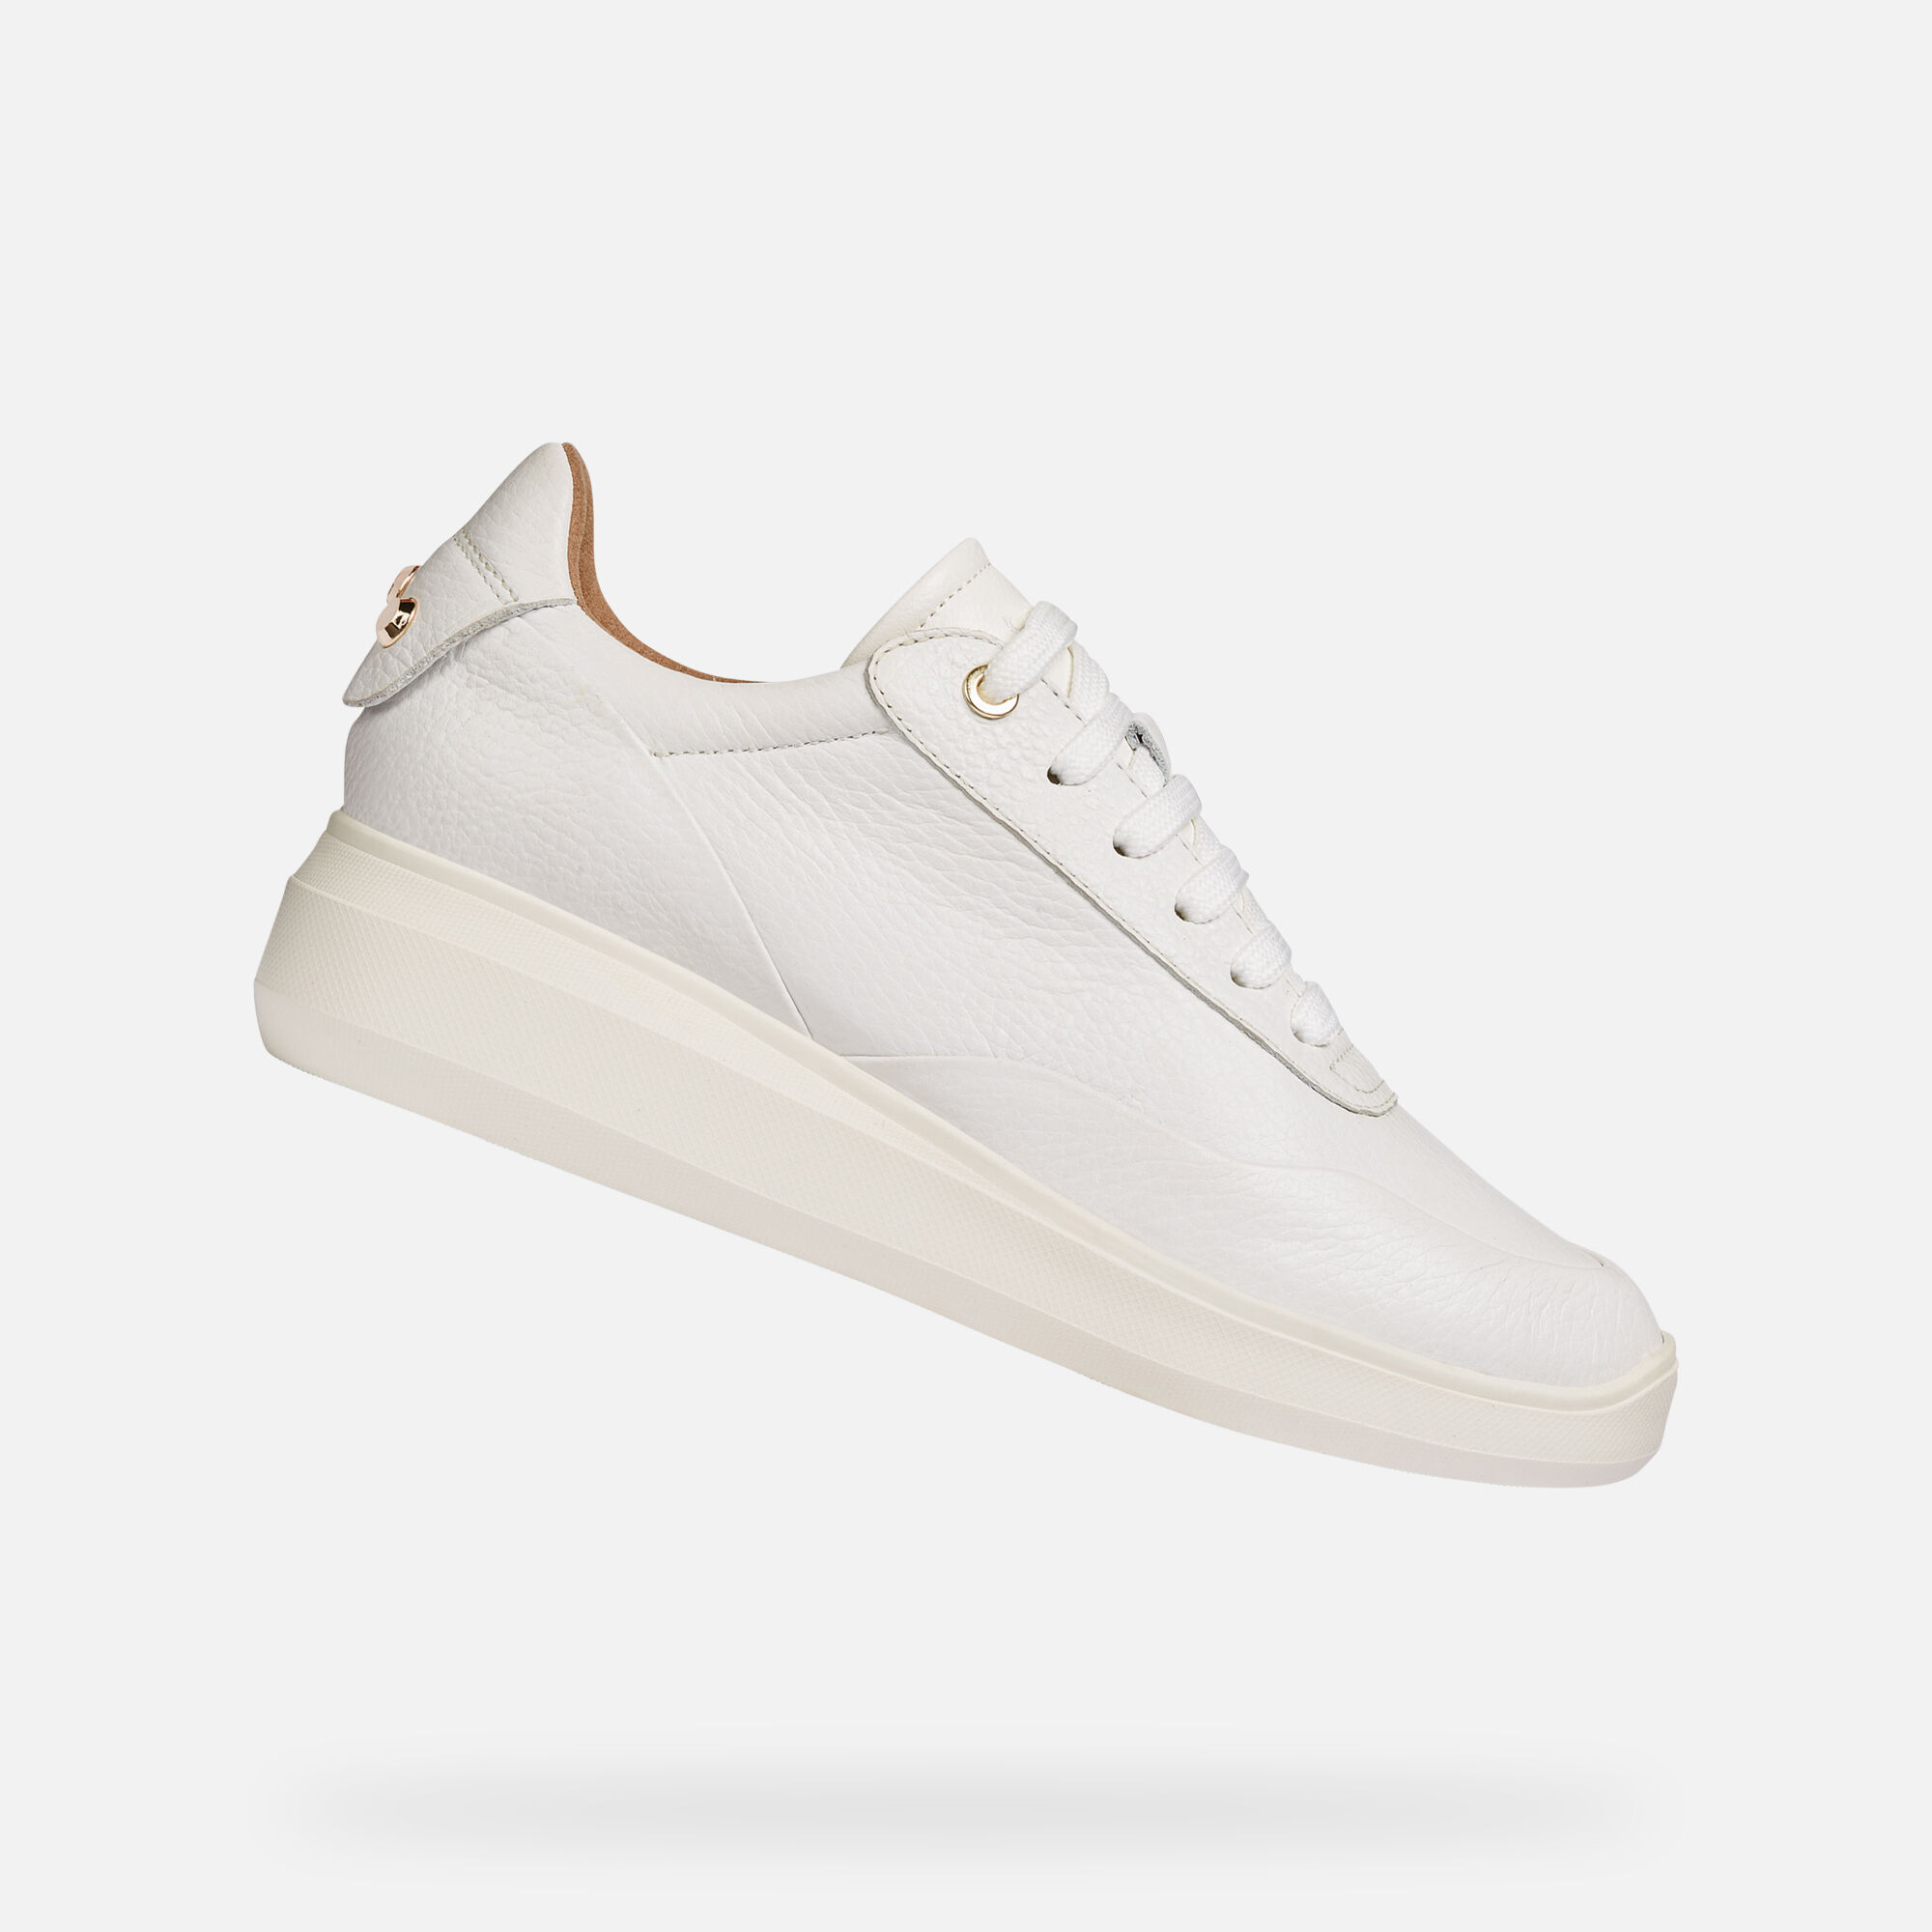 Geox RUBIDIA Femme Sneakers Blanches | Geox ® Boutique en